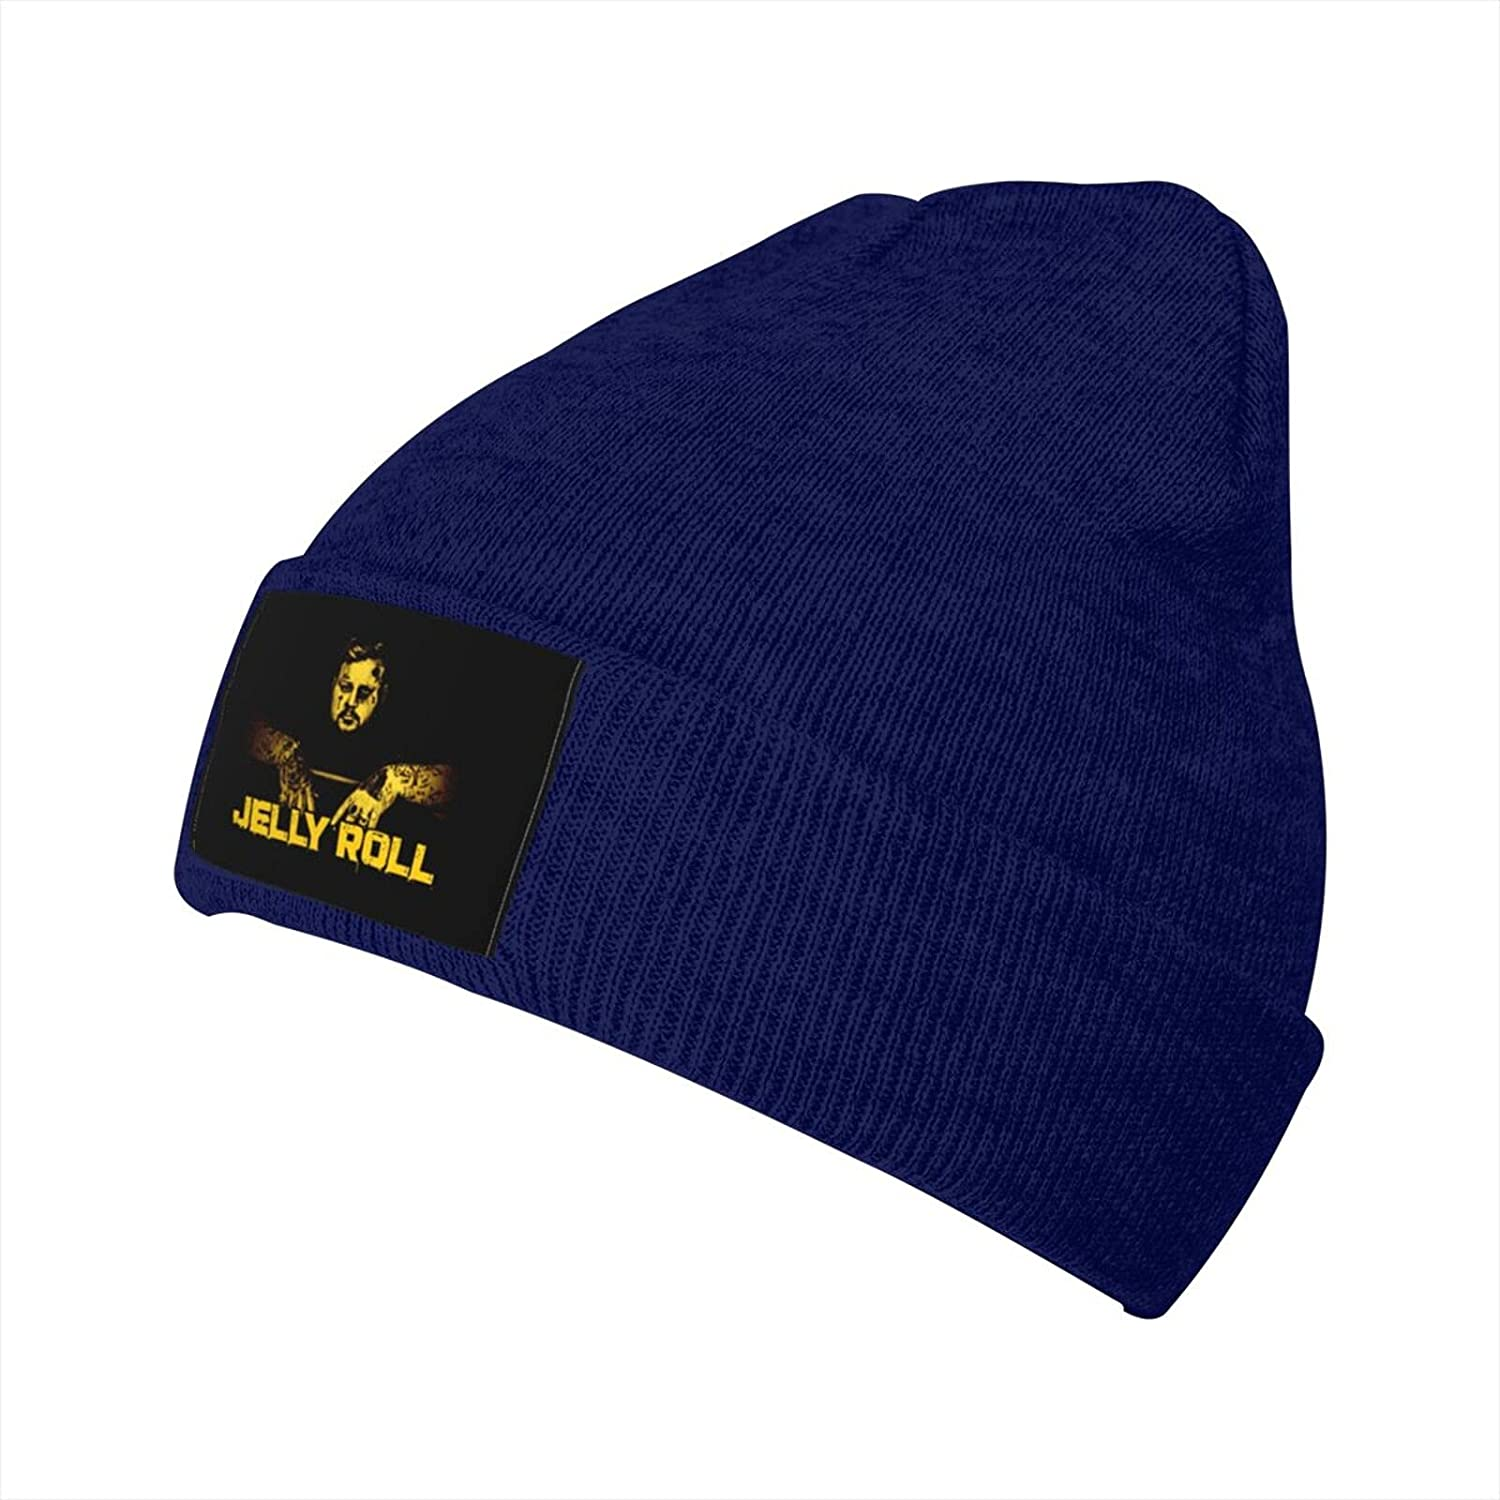 In stock Ruporch Je-Lly-R-Oll Knit Hat Beanie Unisex Cap f Hats Luxury goods Adult